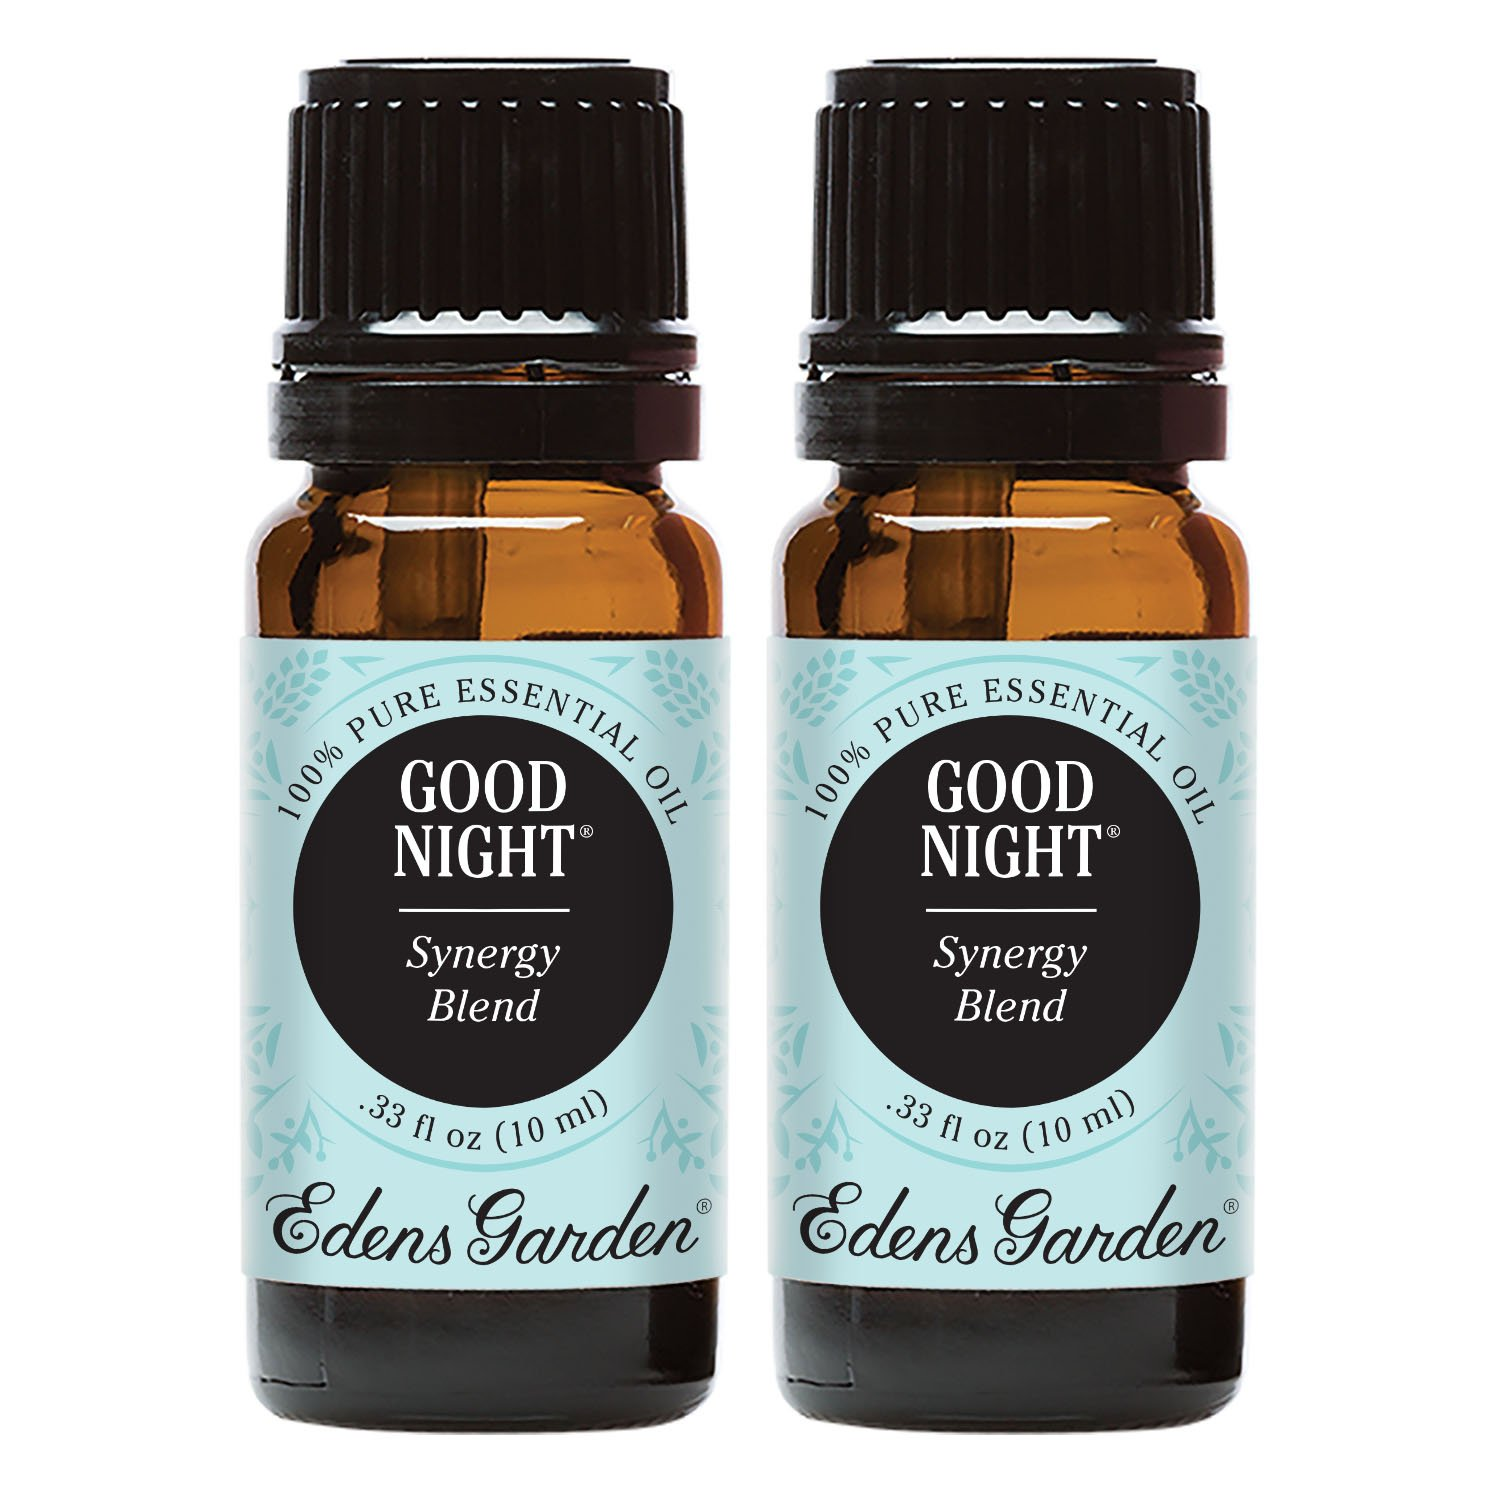 Edens Garden Good Night Essential Oil Synergy Blend, 100% Pure Therapeutic Grade (Aromatherapy Oils- Anxiety & Sleep), 10 ml Value Pack